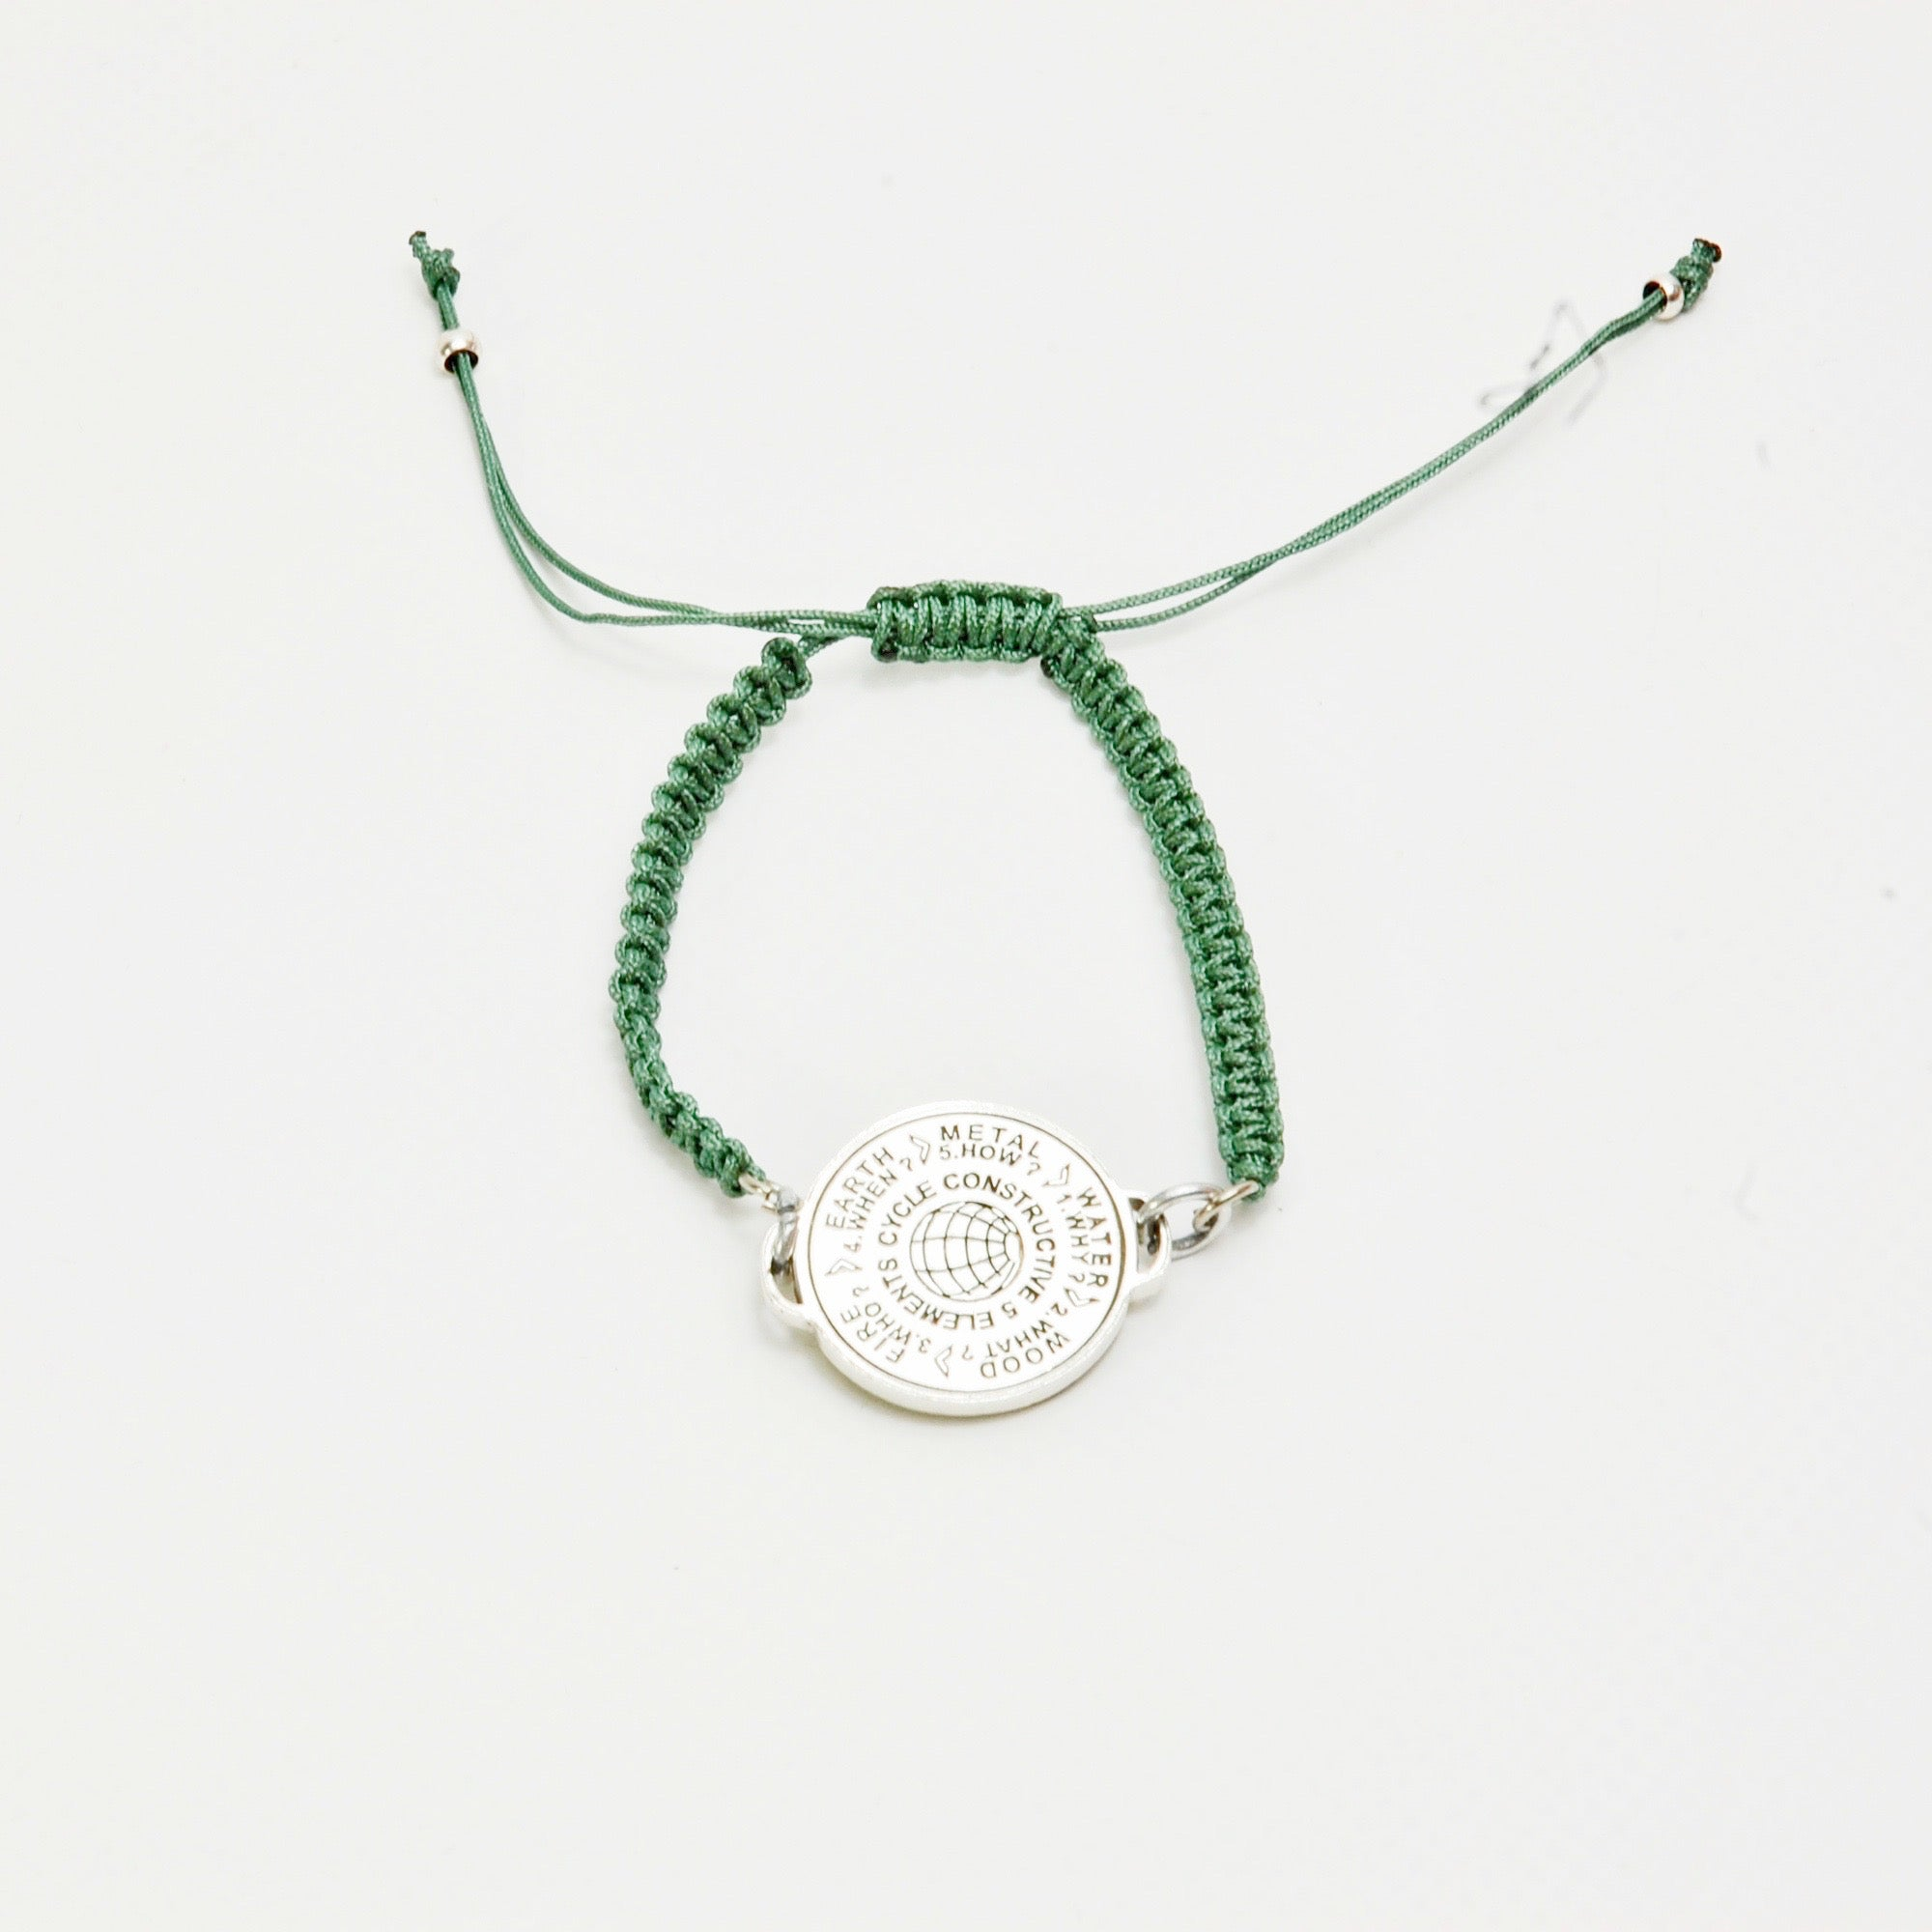 5 Elements Jewelry bracelet macrame green color cordon